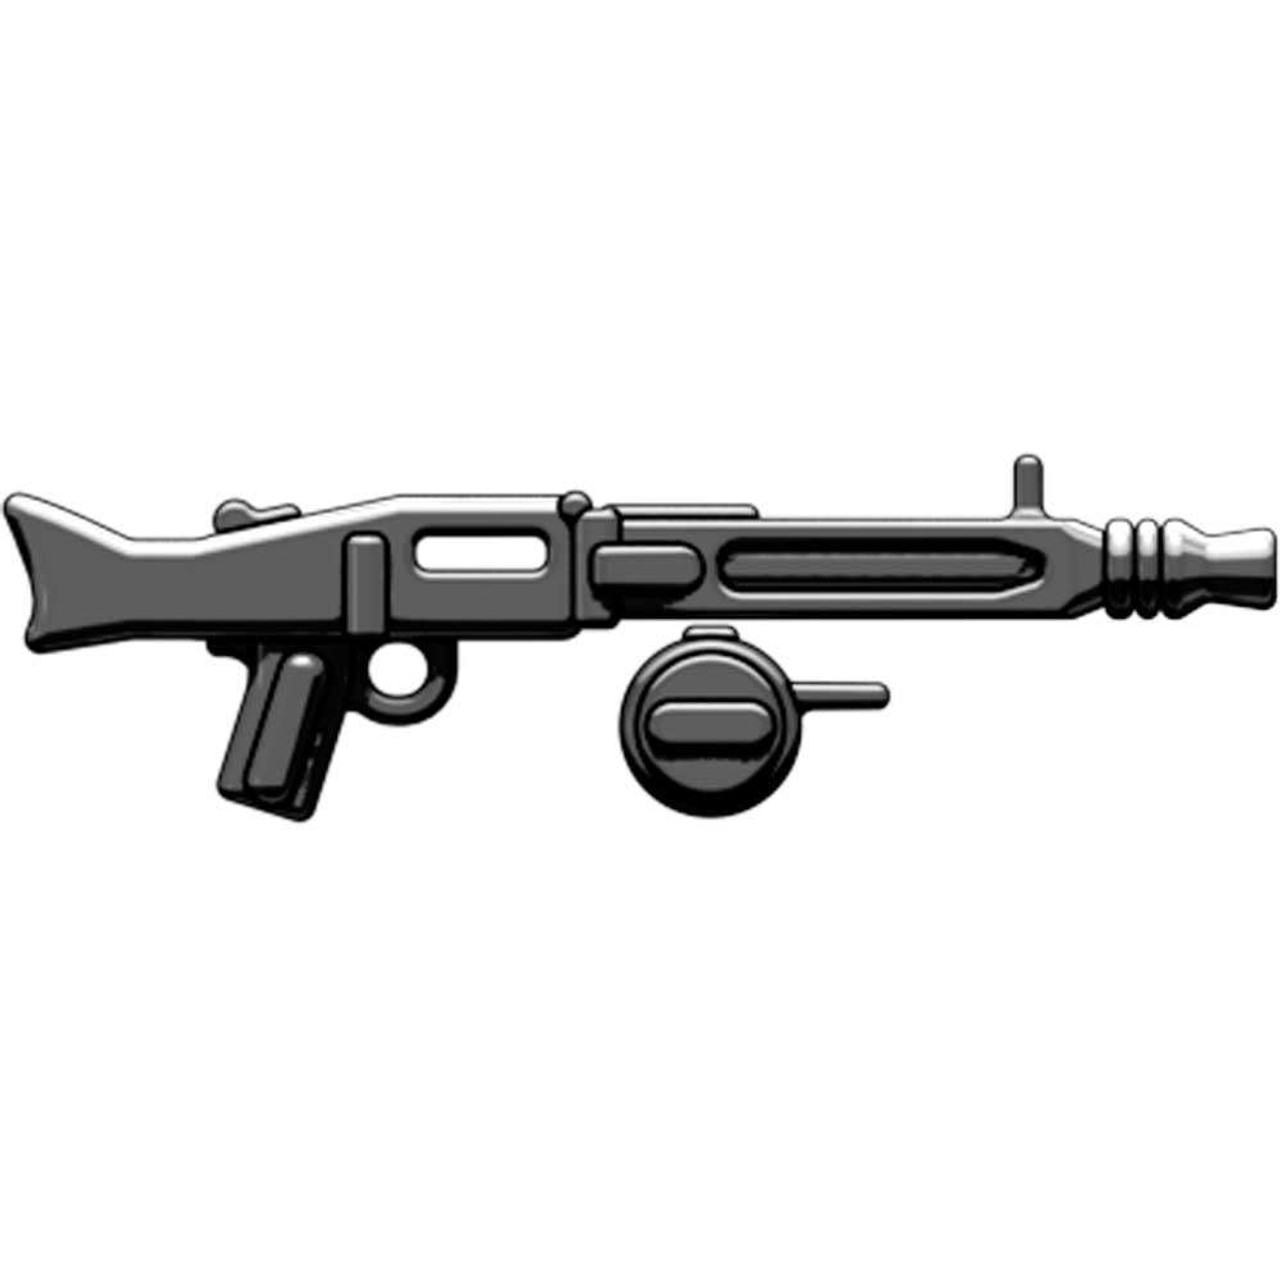 BrickArms Weapons MG-42 with Ammo Drum 2.5-Inch [Black]